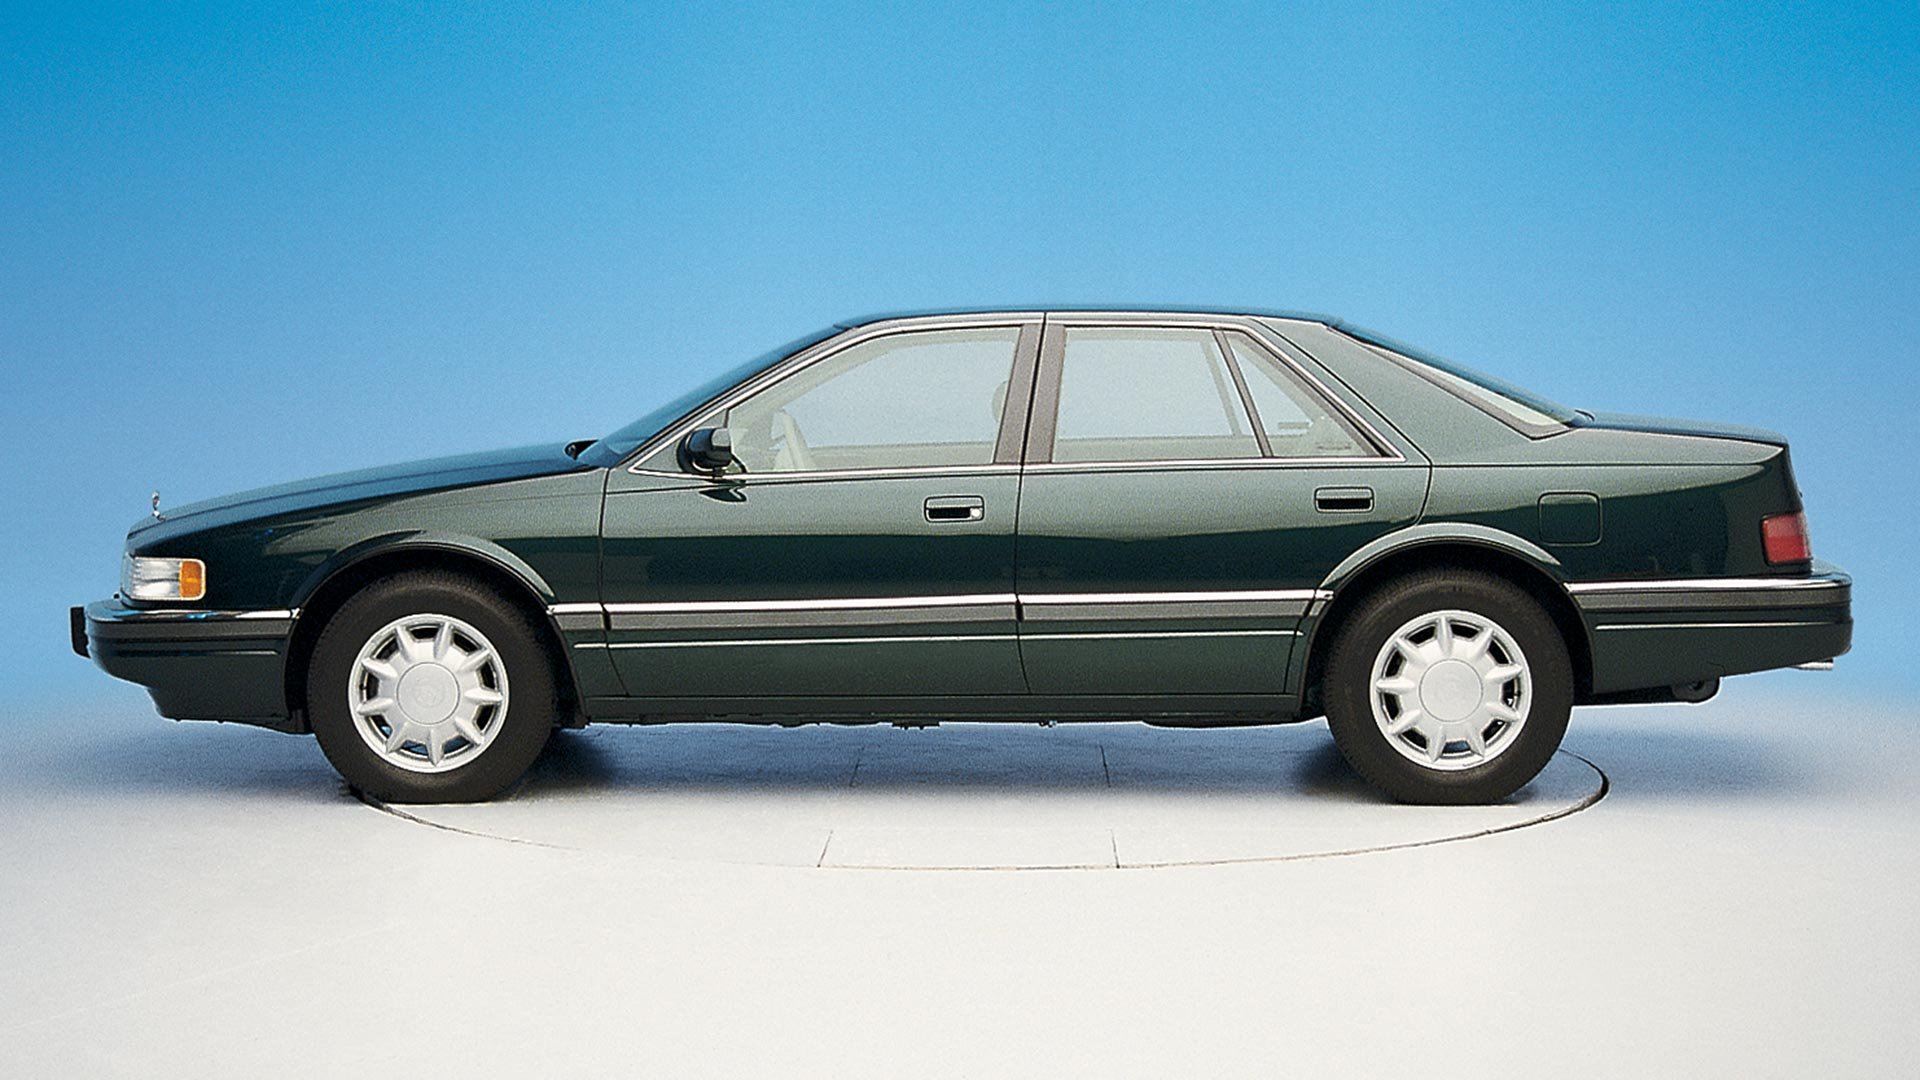 1997 Cadillac Seville 4-door sedan